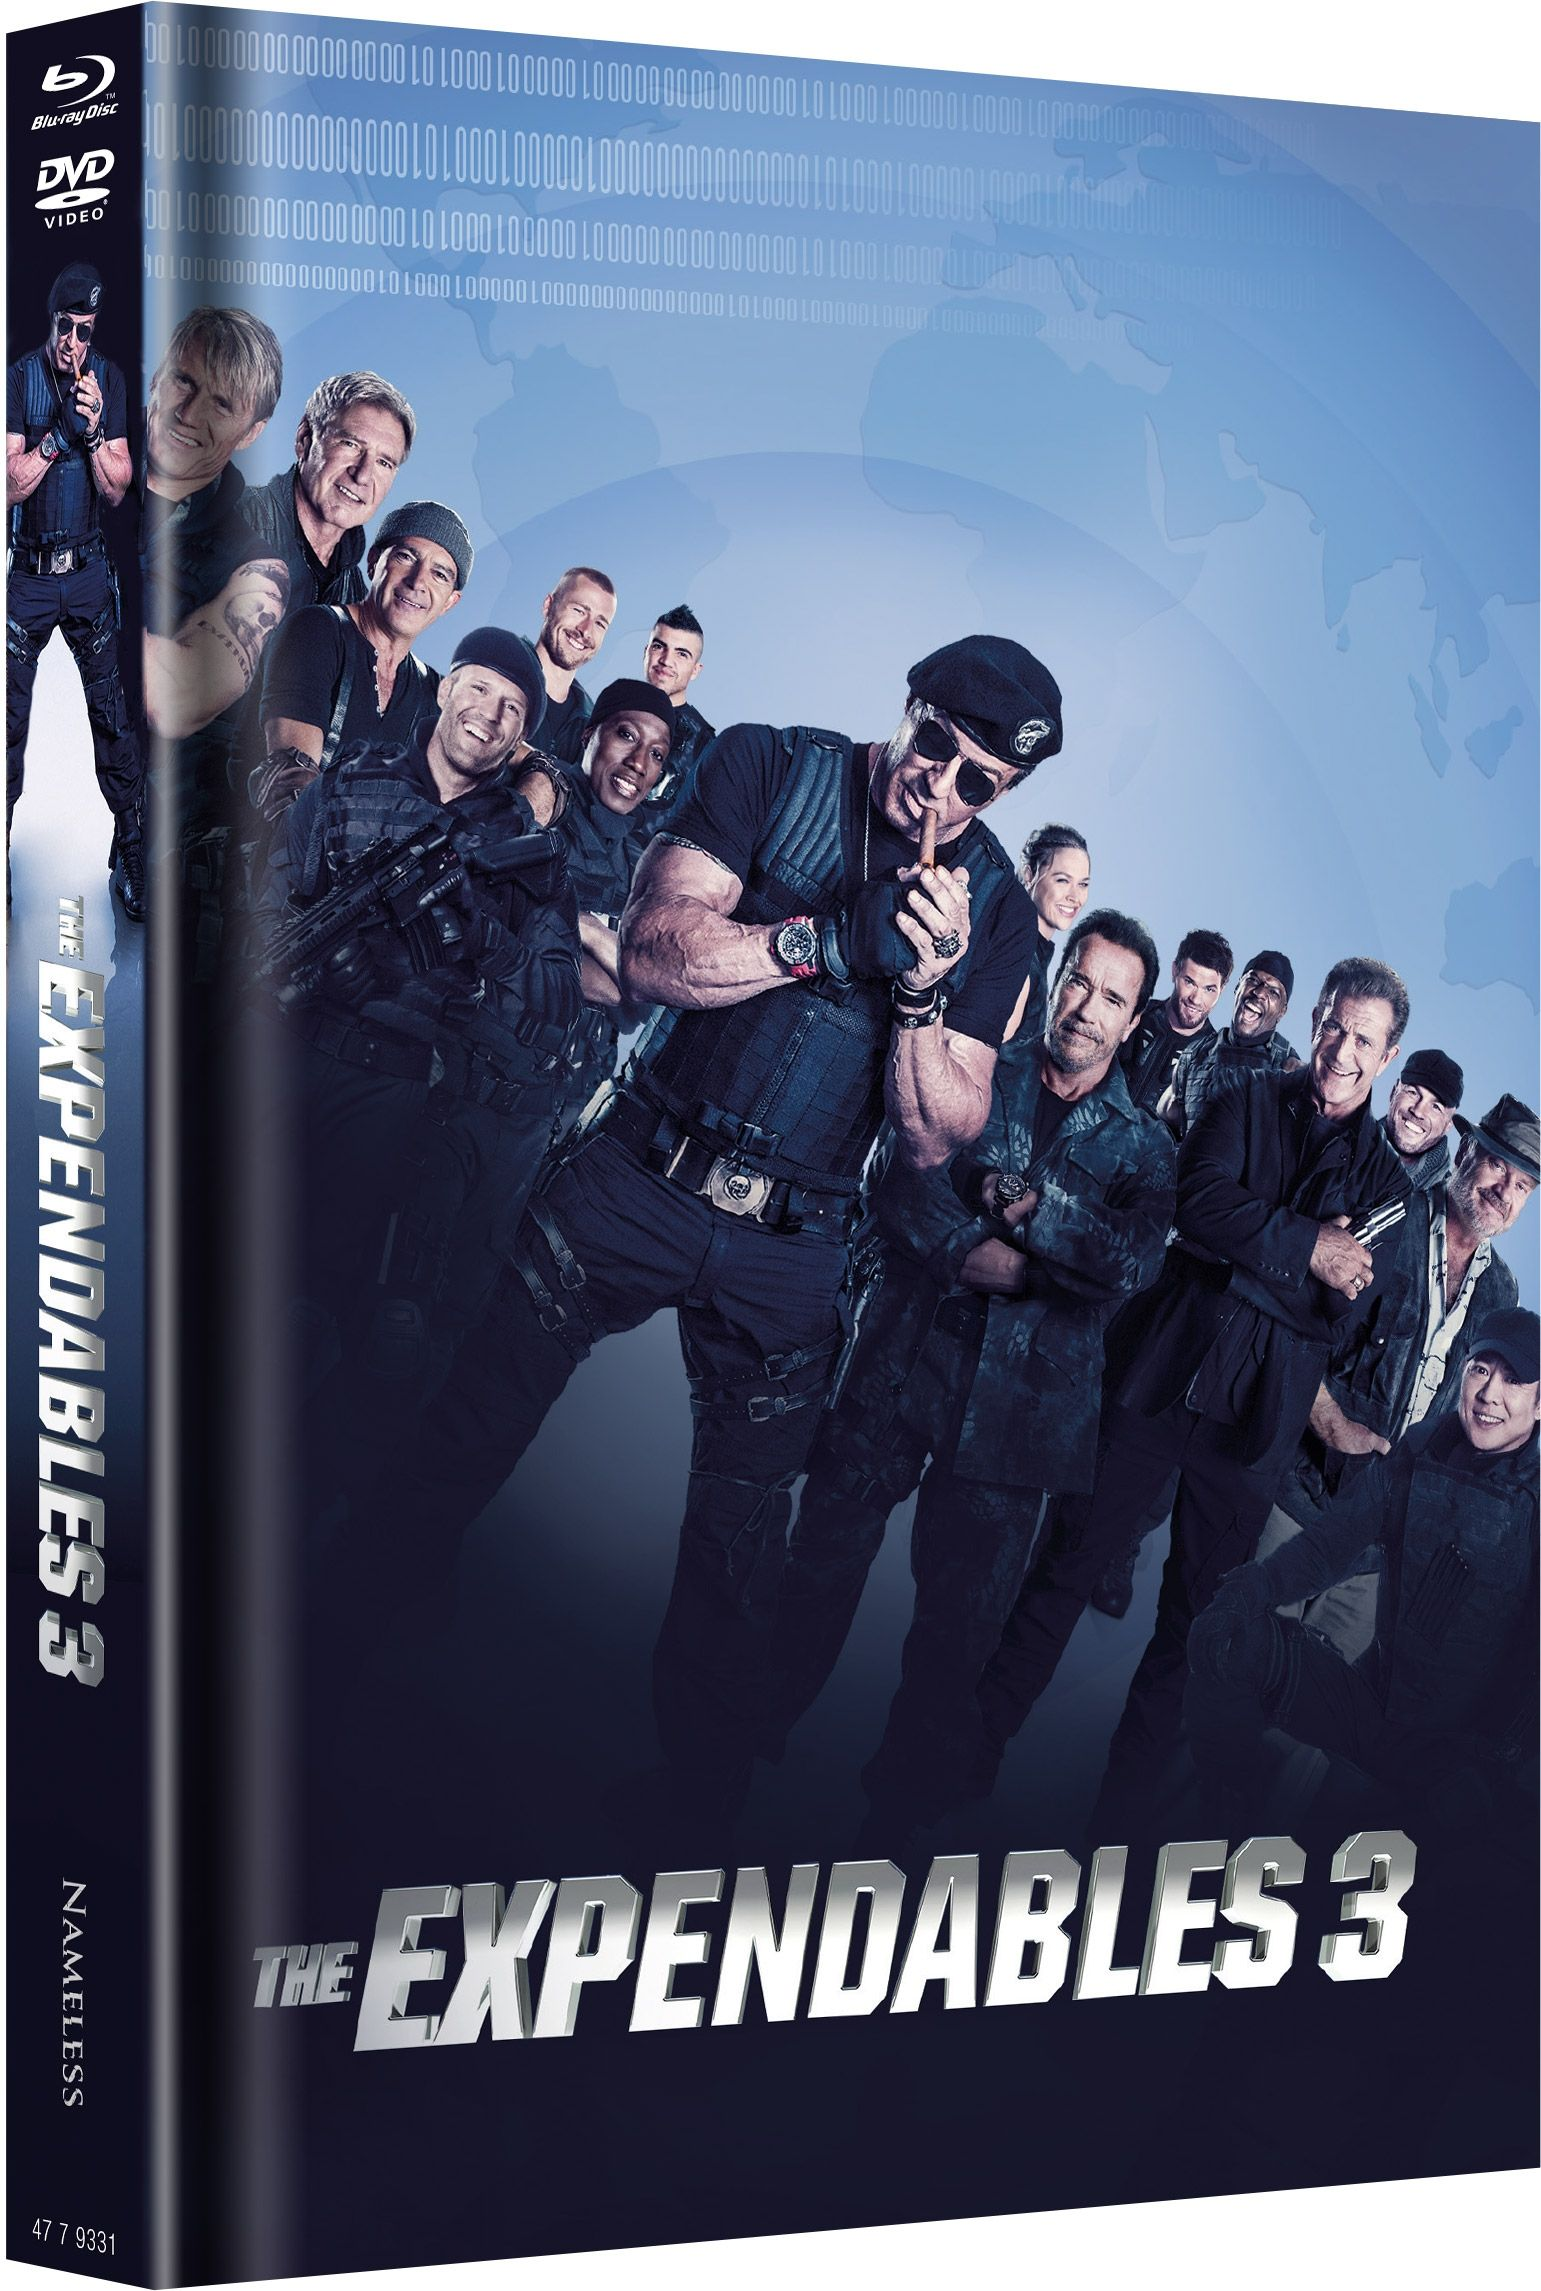 Expendables 3, The - A Mans Job (Lim. Uncut Mediabook - Cover A) (DVD + BLURAY)